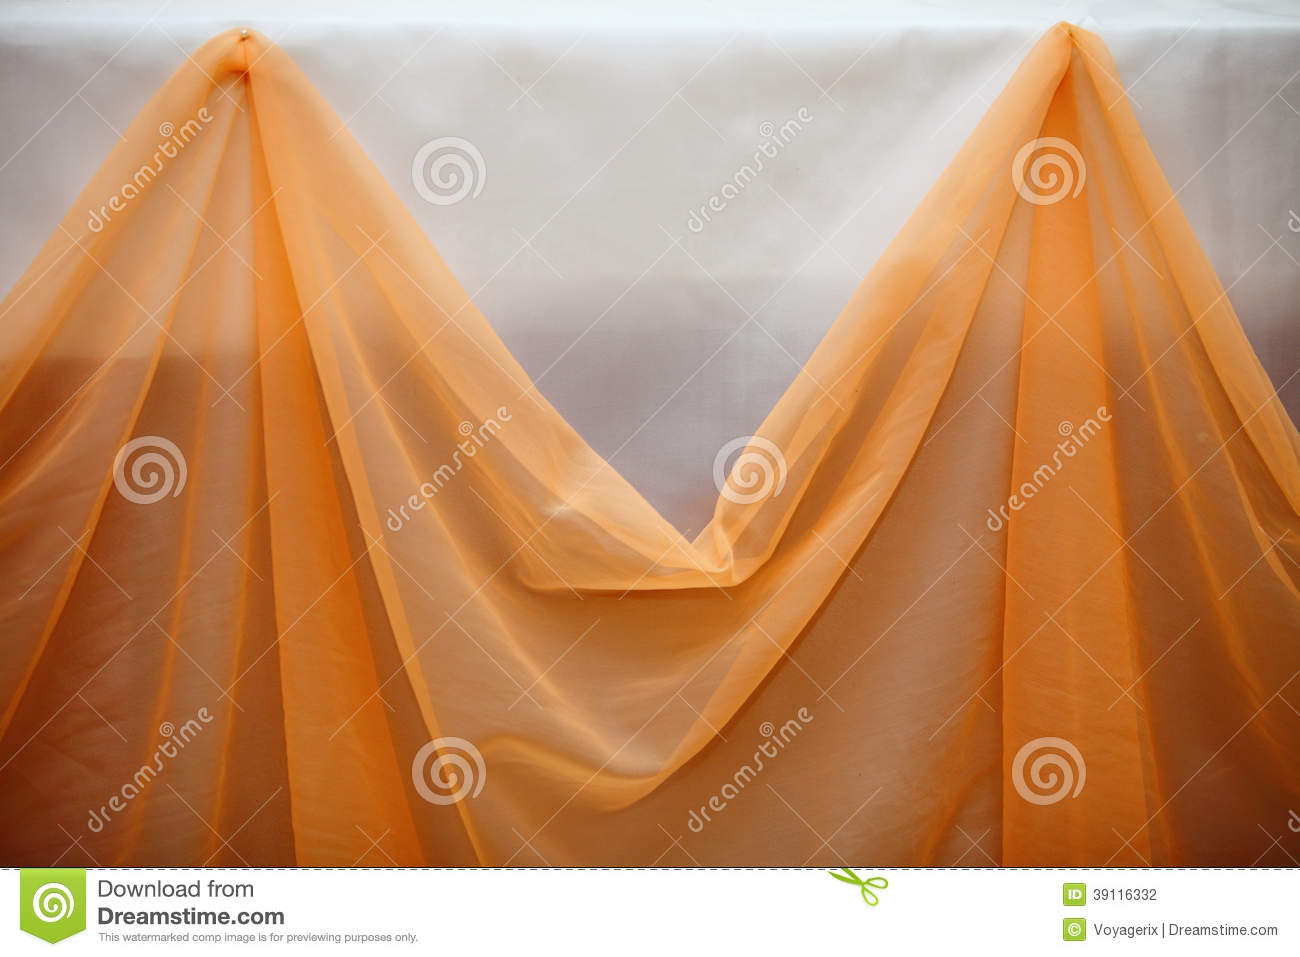 Orange Fabric Cloth And White Wall Decor Detail Stock Photo Image